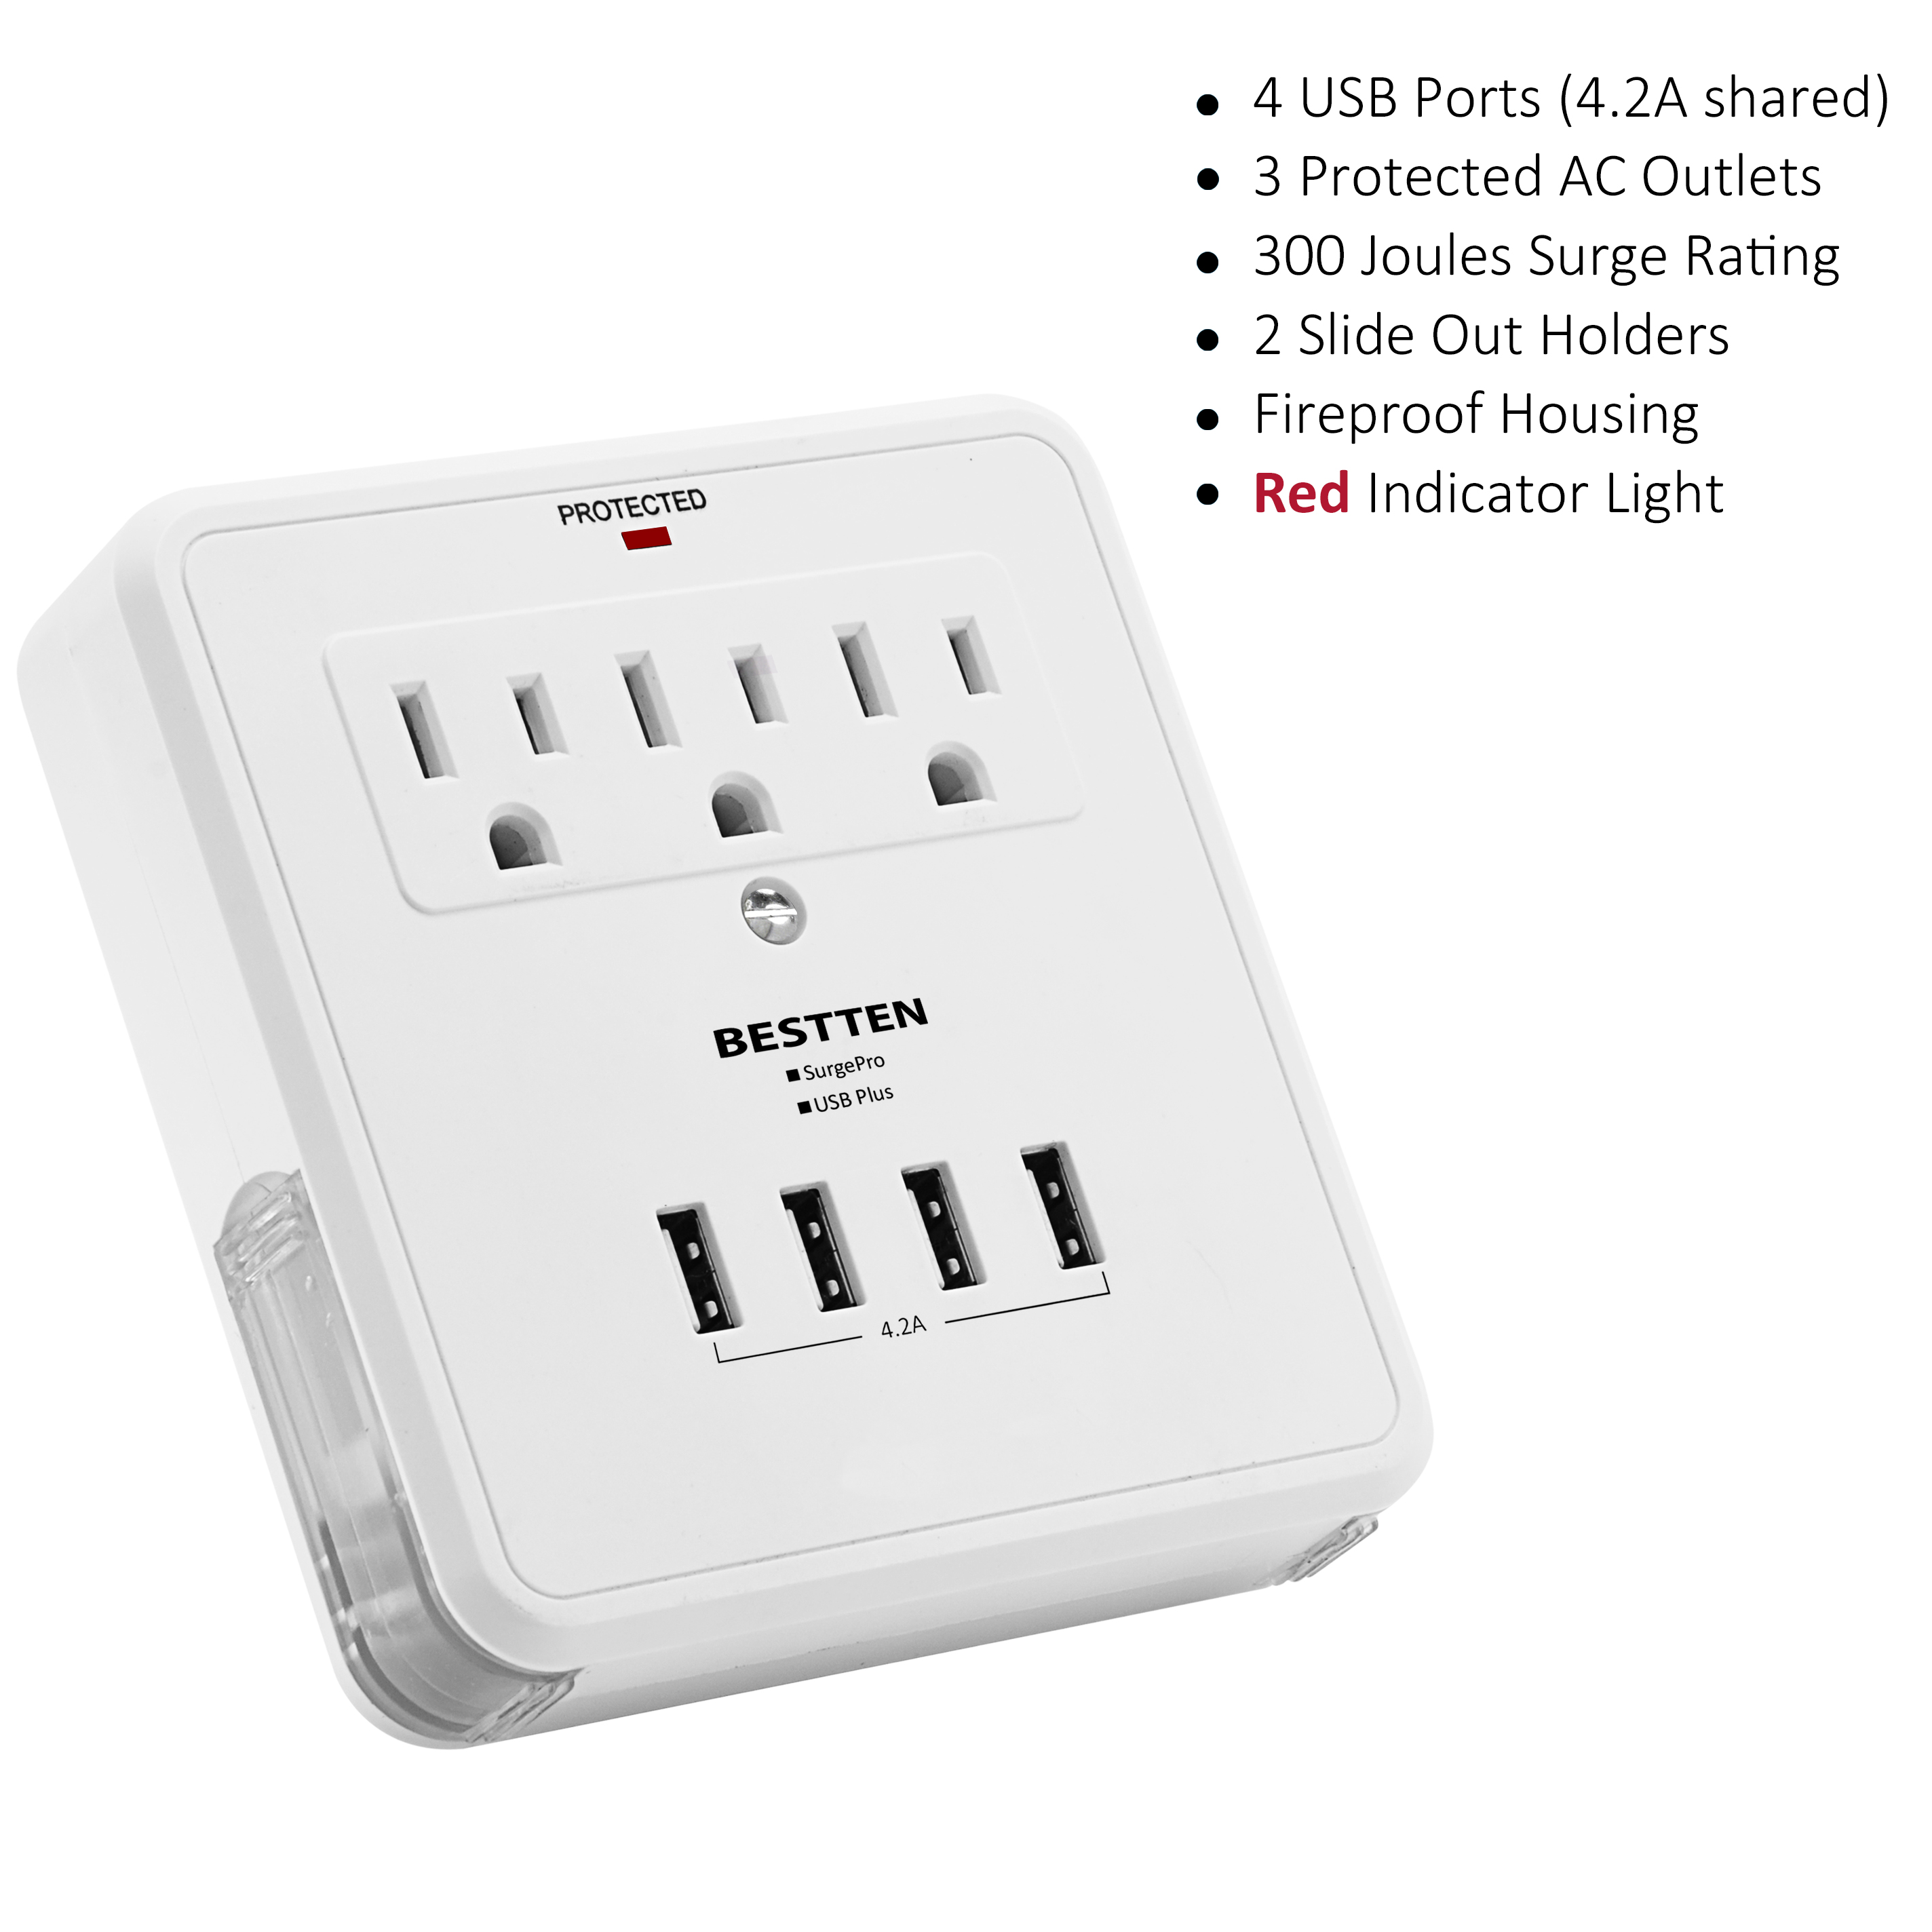 31 Amazing Wall Switches And Sockets Pc Ac V A Electronic Digital Volex Switch Wiring Diagram Adapter Surge Protector With Four Usb Charging Ports Total Electrical Outlet Extenders Slide Out Phone